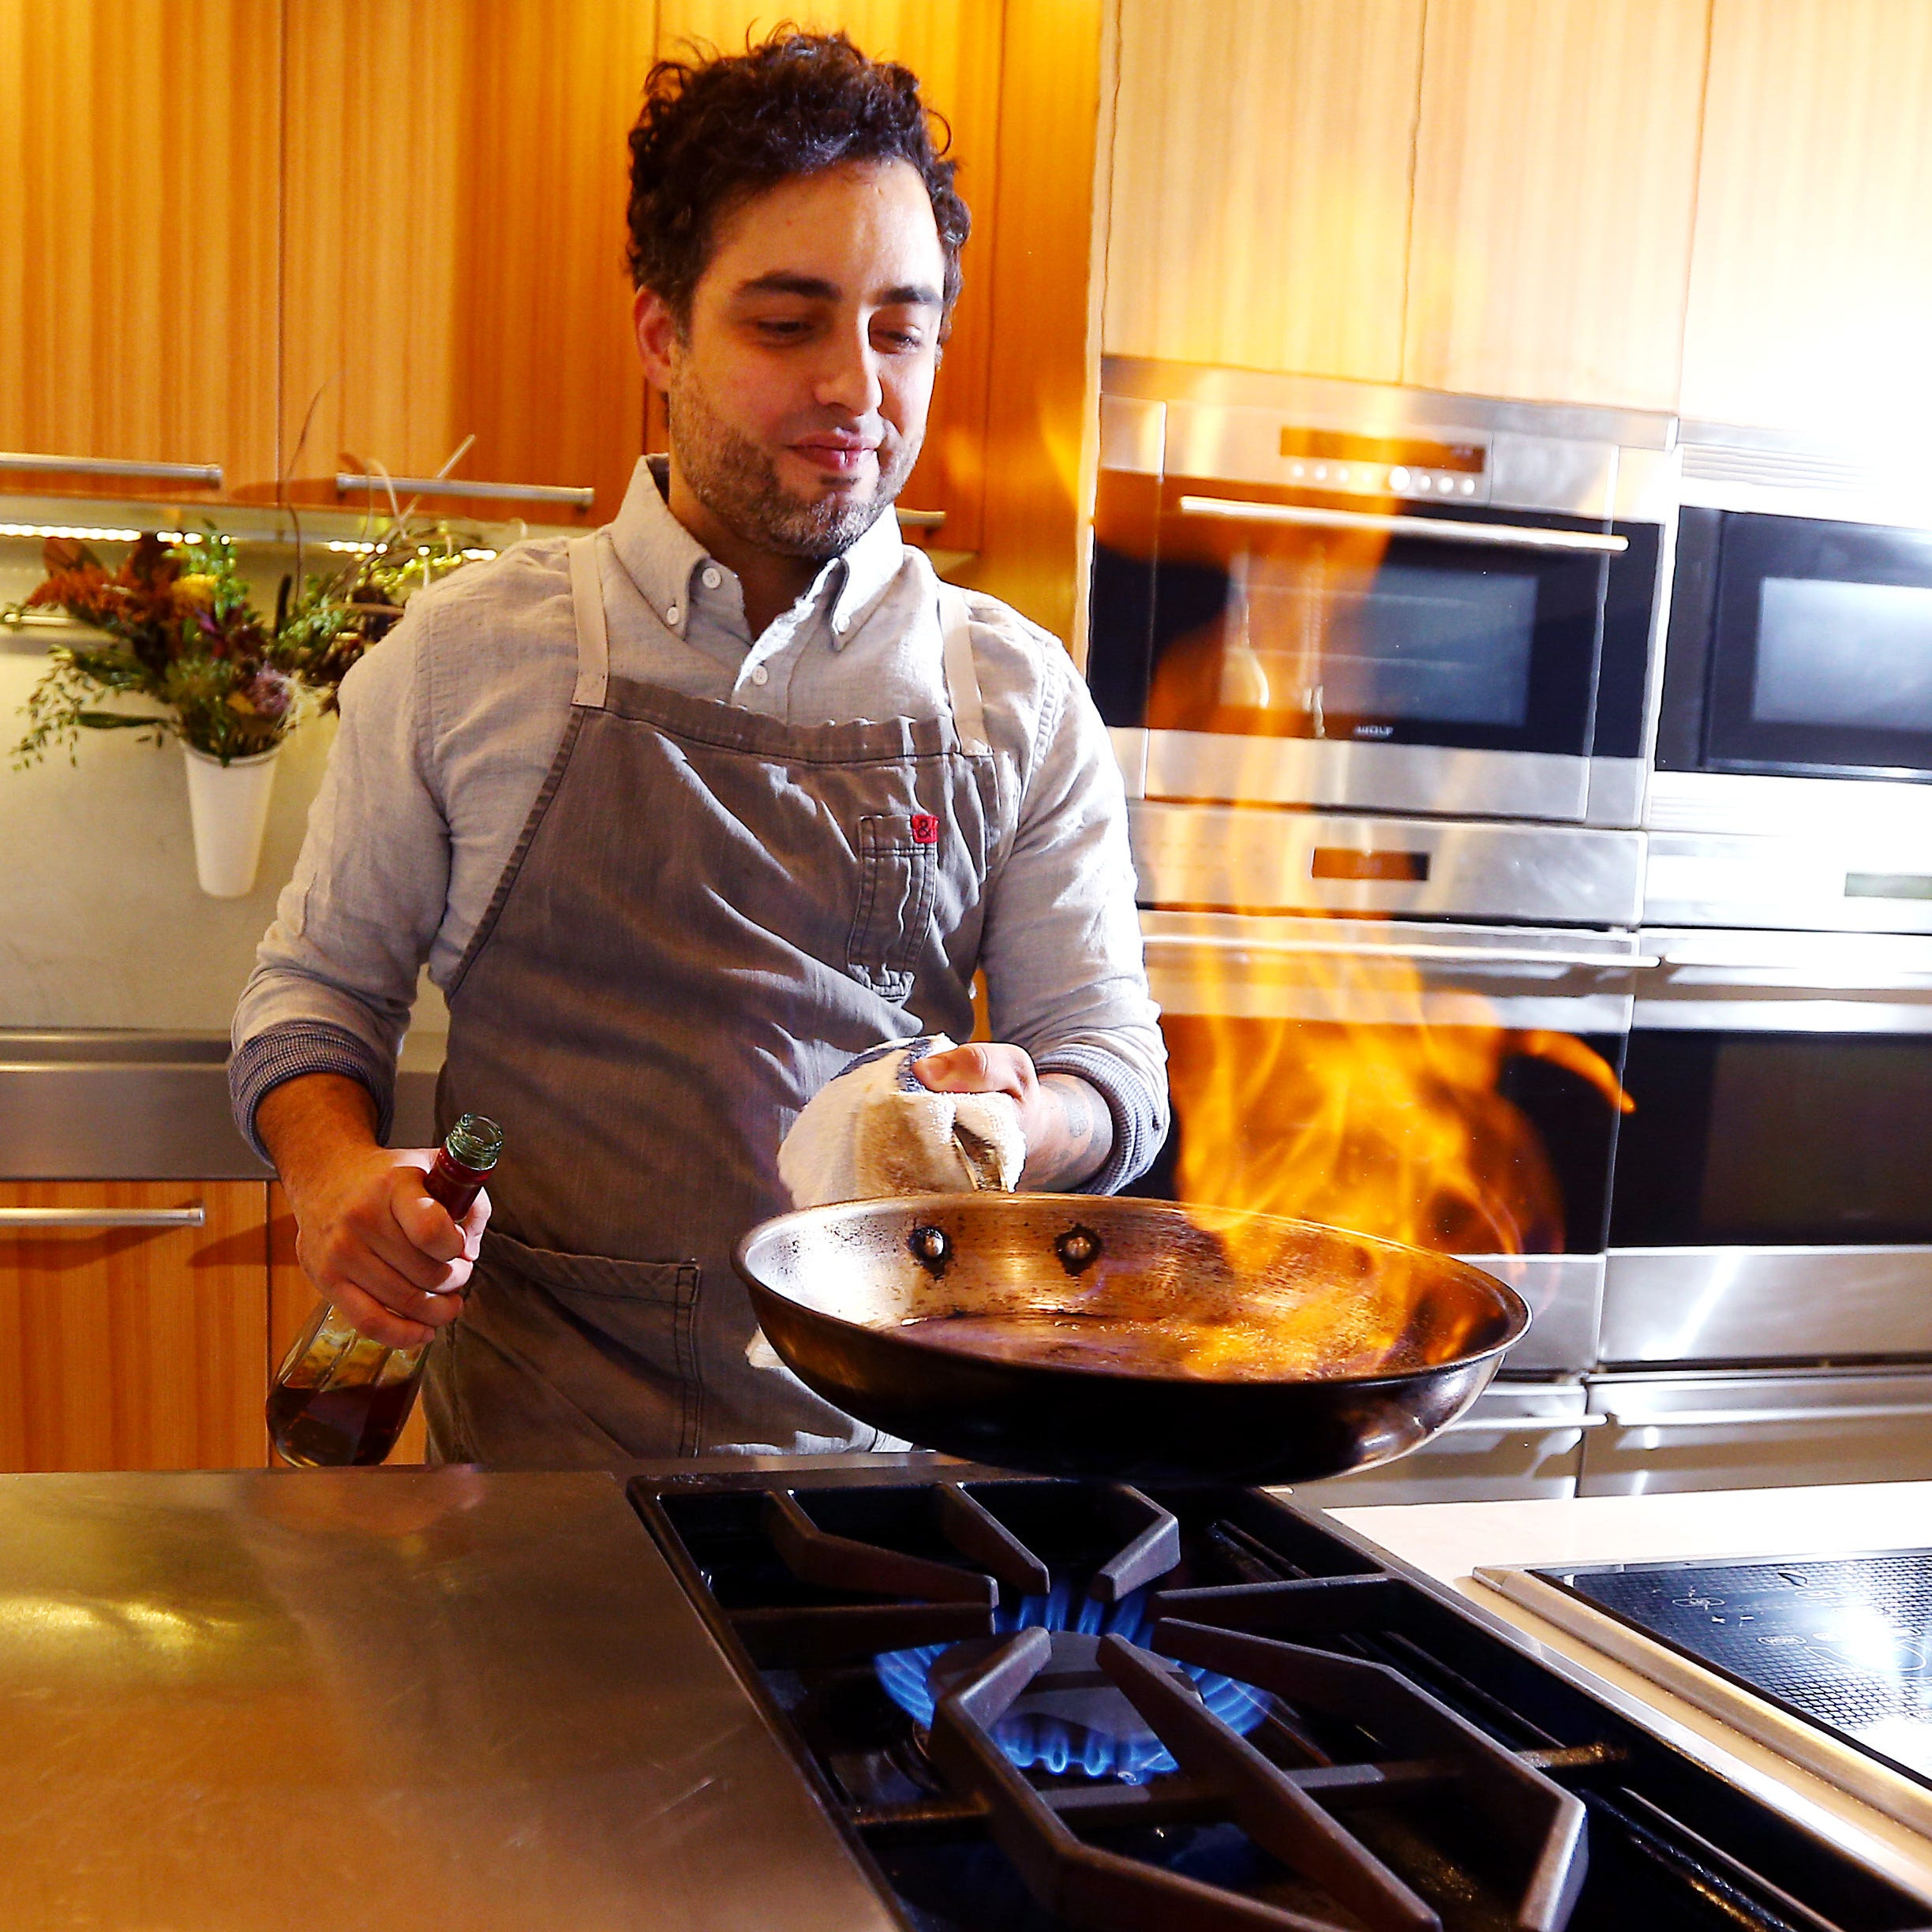 From probation officer to Top Chef contestant: David Viana is having the best year of his life